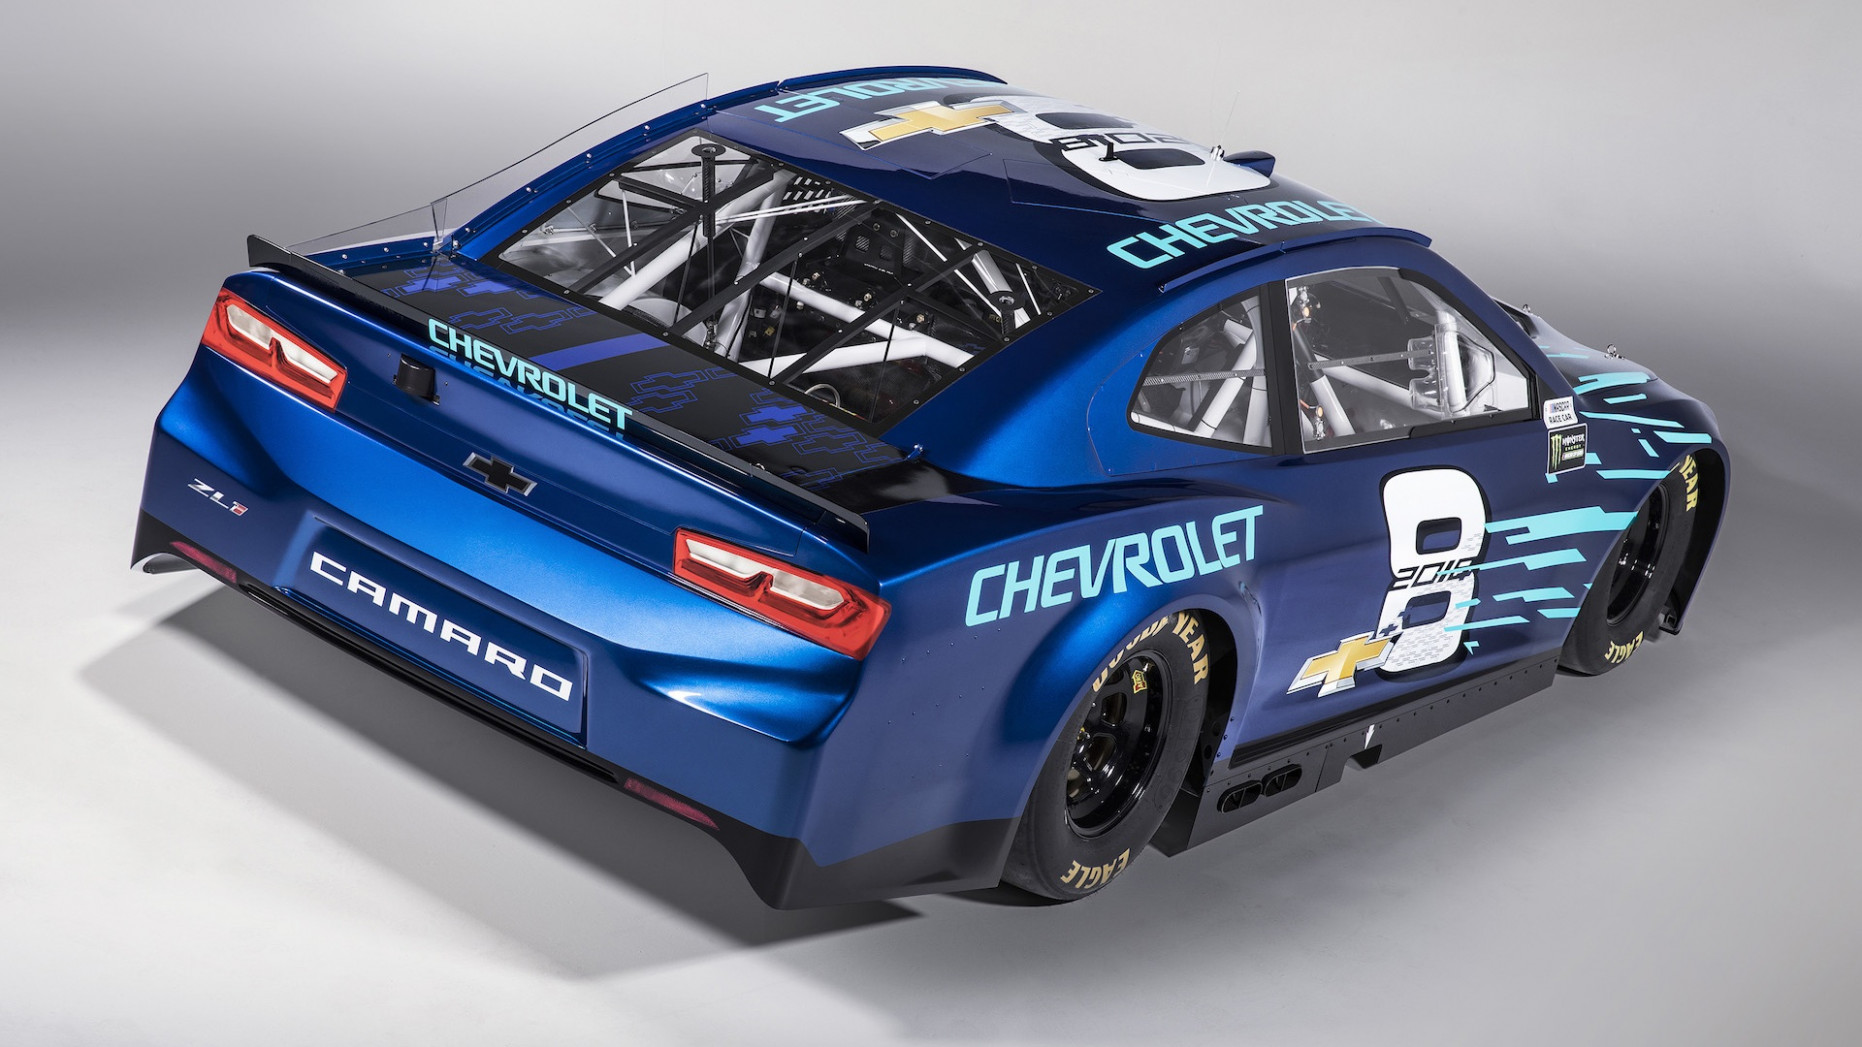 Chevrolet Camaro ZL8 to be next year's NASCAR Cup car